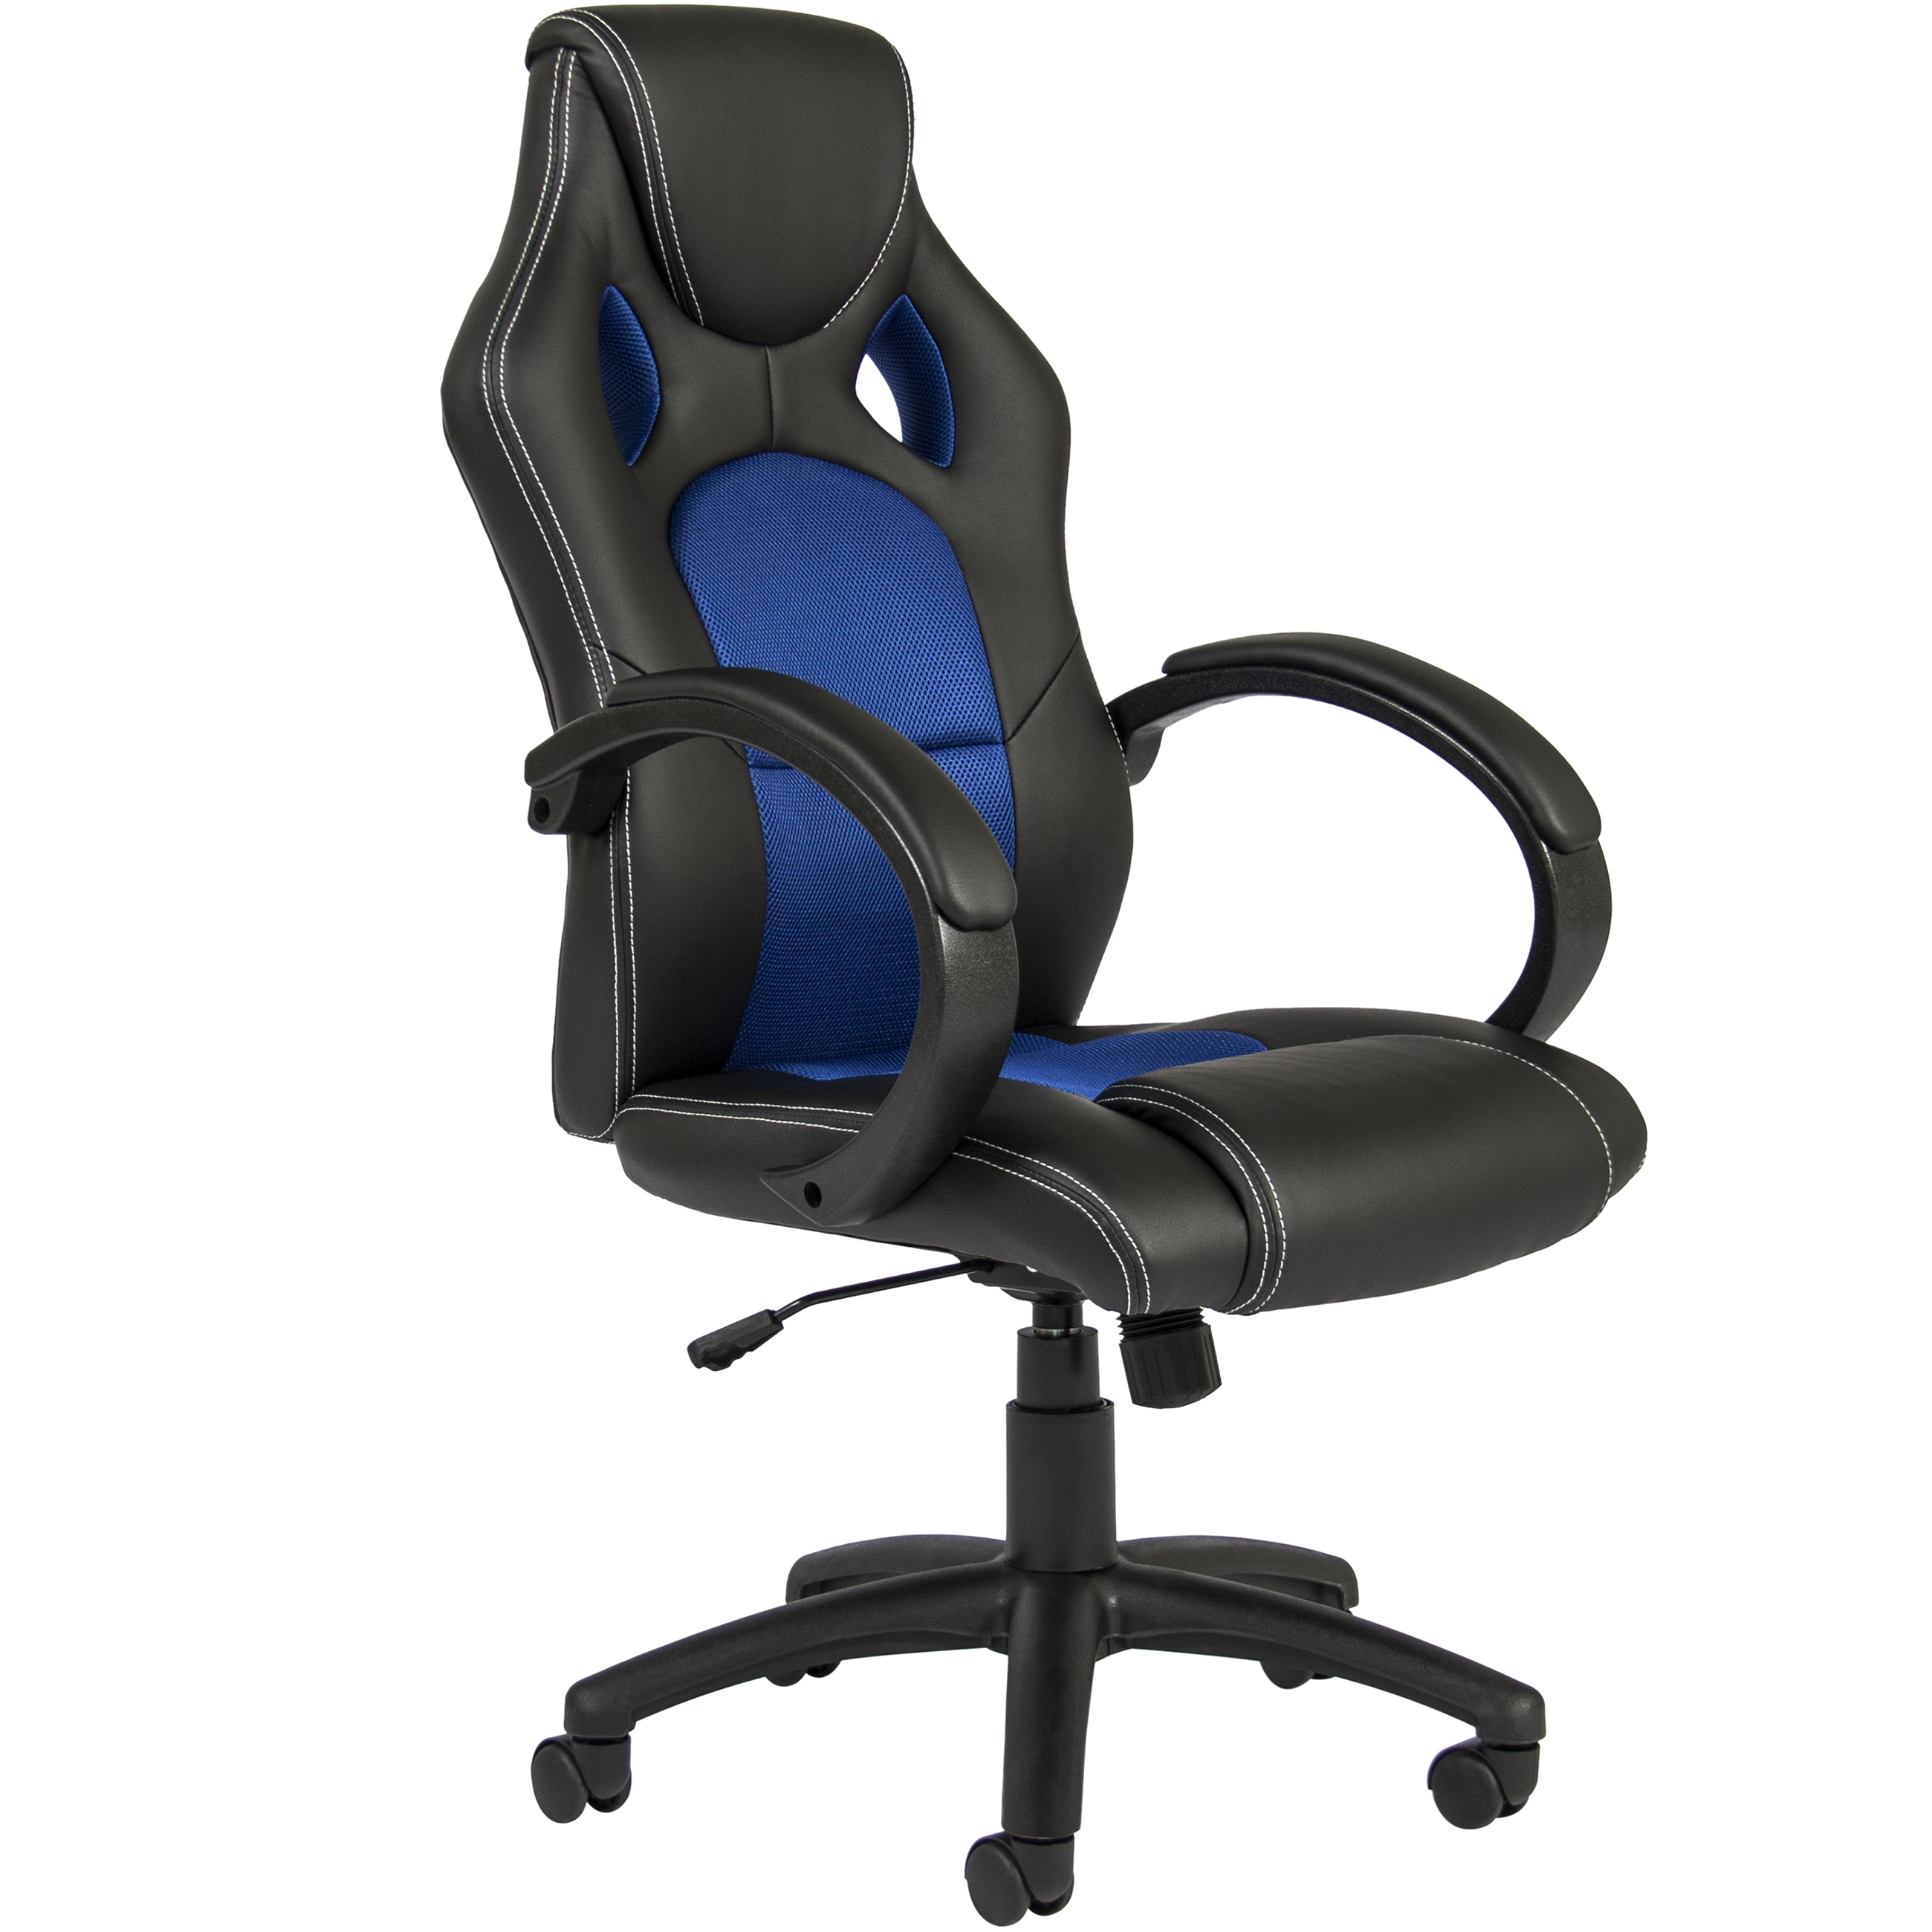 Executive Racing Office Chair PU Leather Swivel Computer Desk Seat High-Back Blue